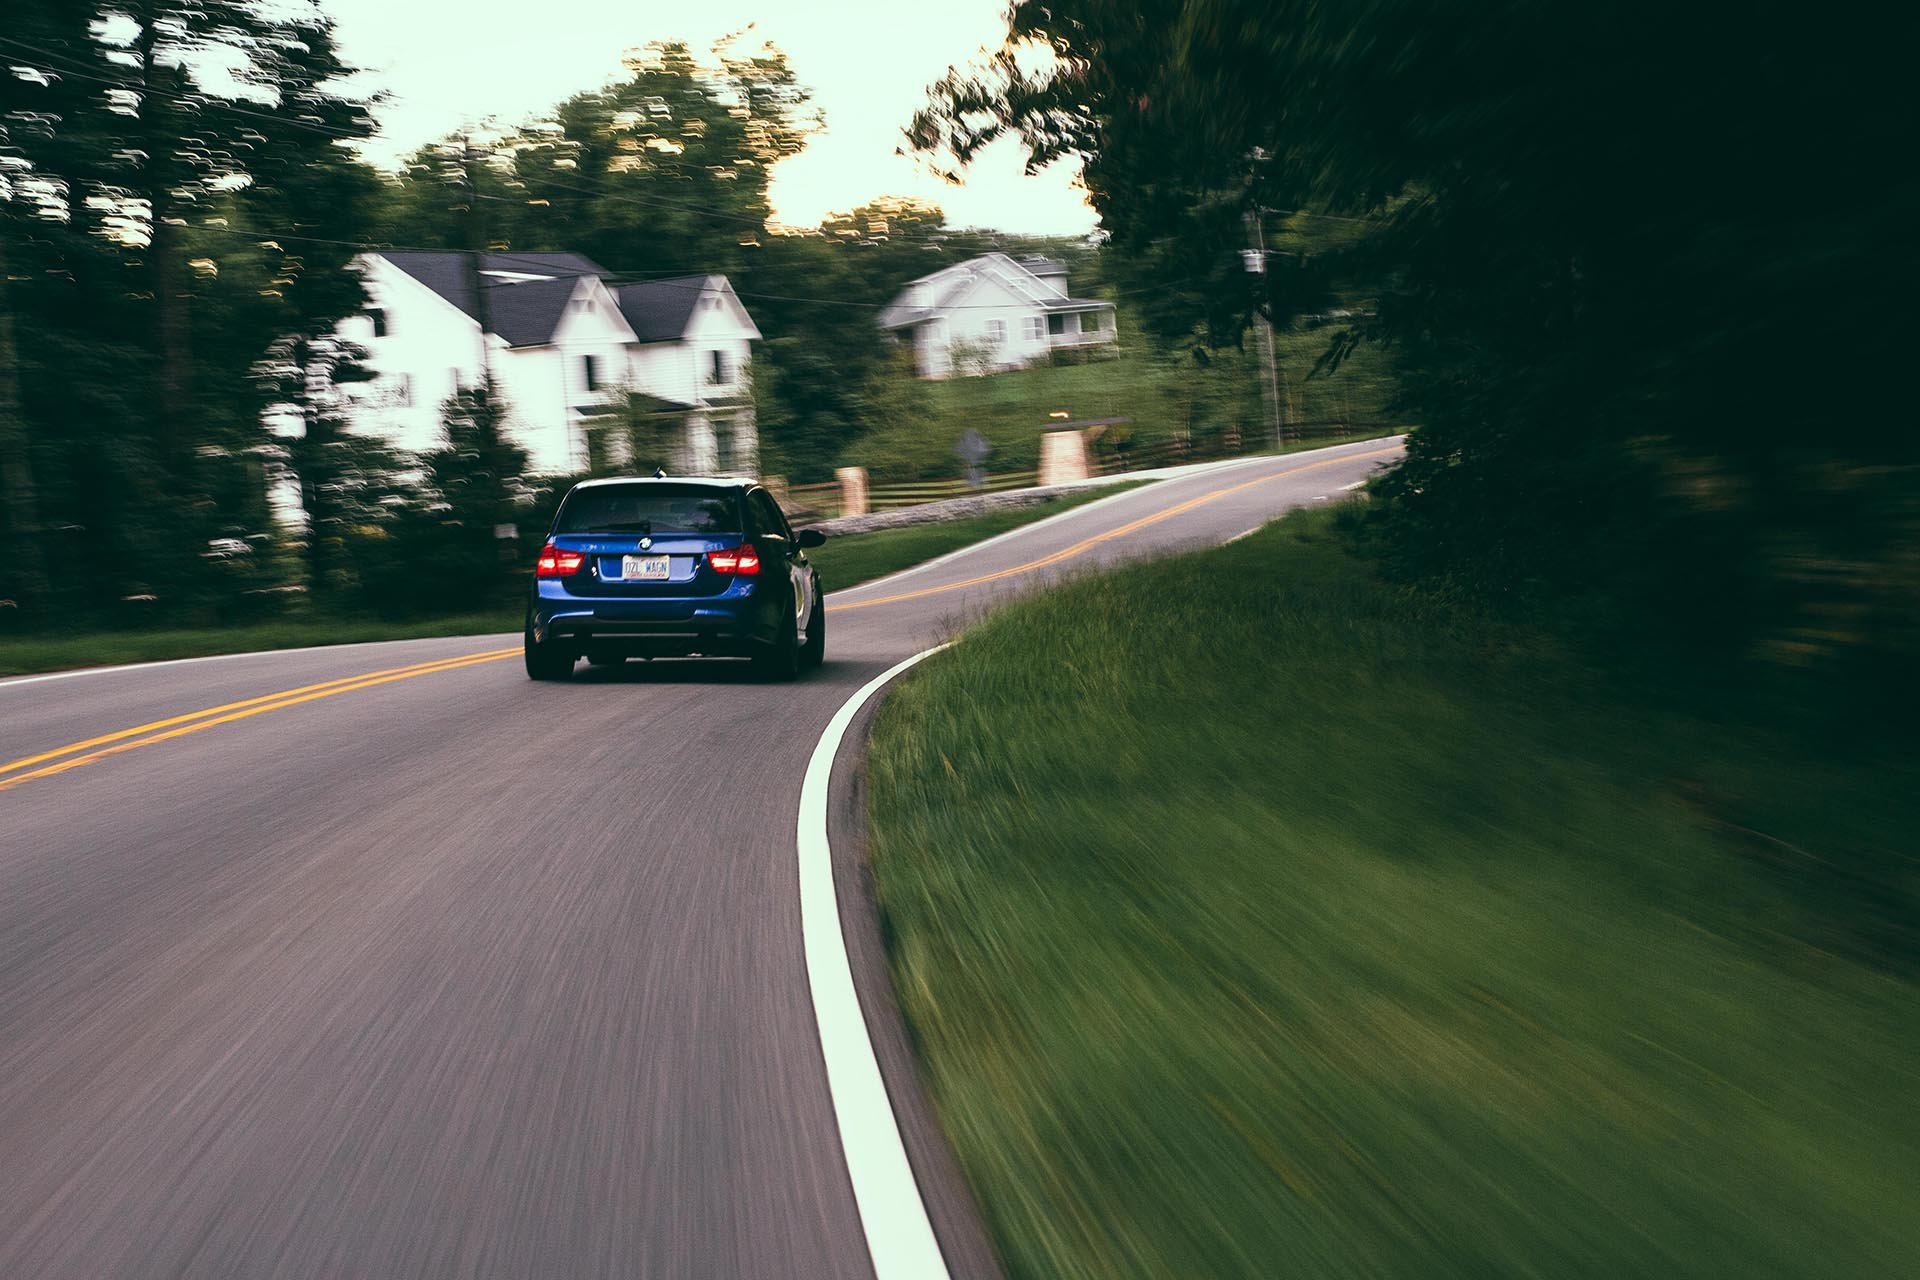 BMW E91 335d rolling shot rear